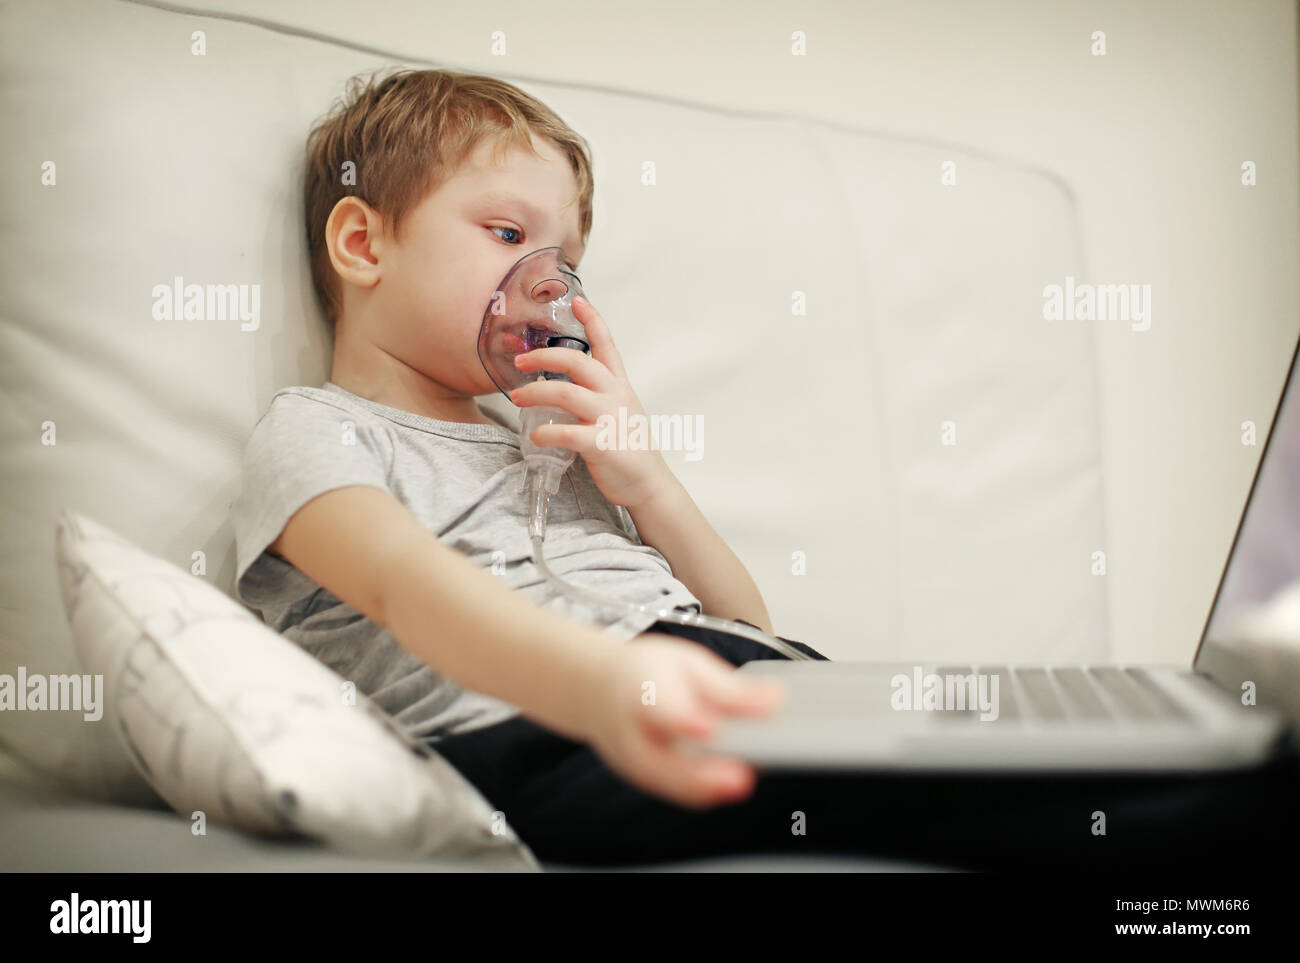 Sick chid with pediatric nebulizer mask in front of laptop. - Stock Image